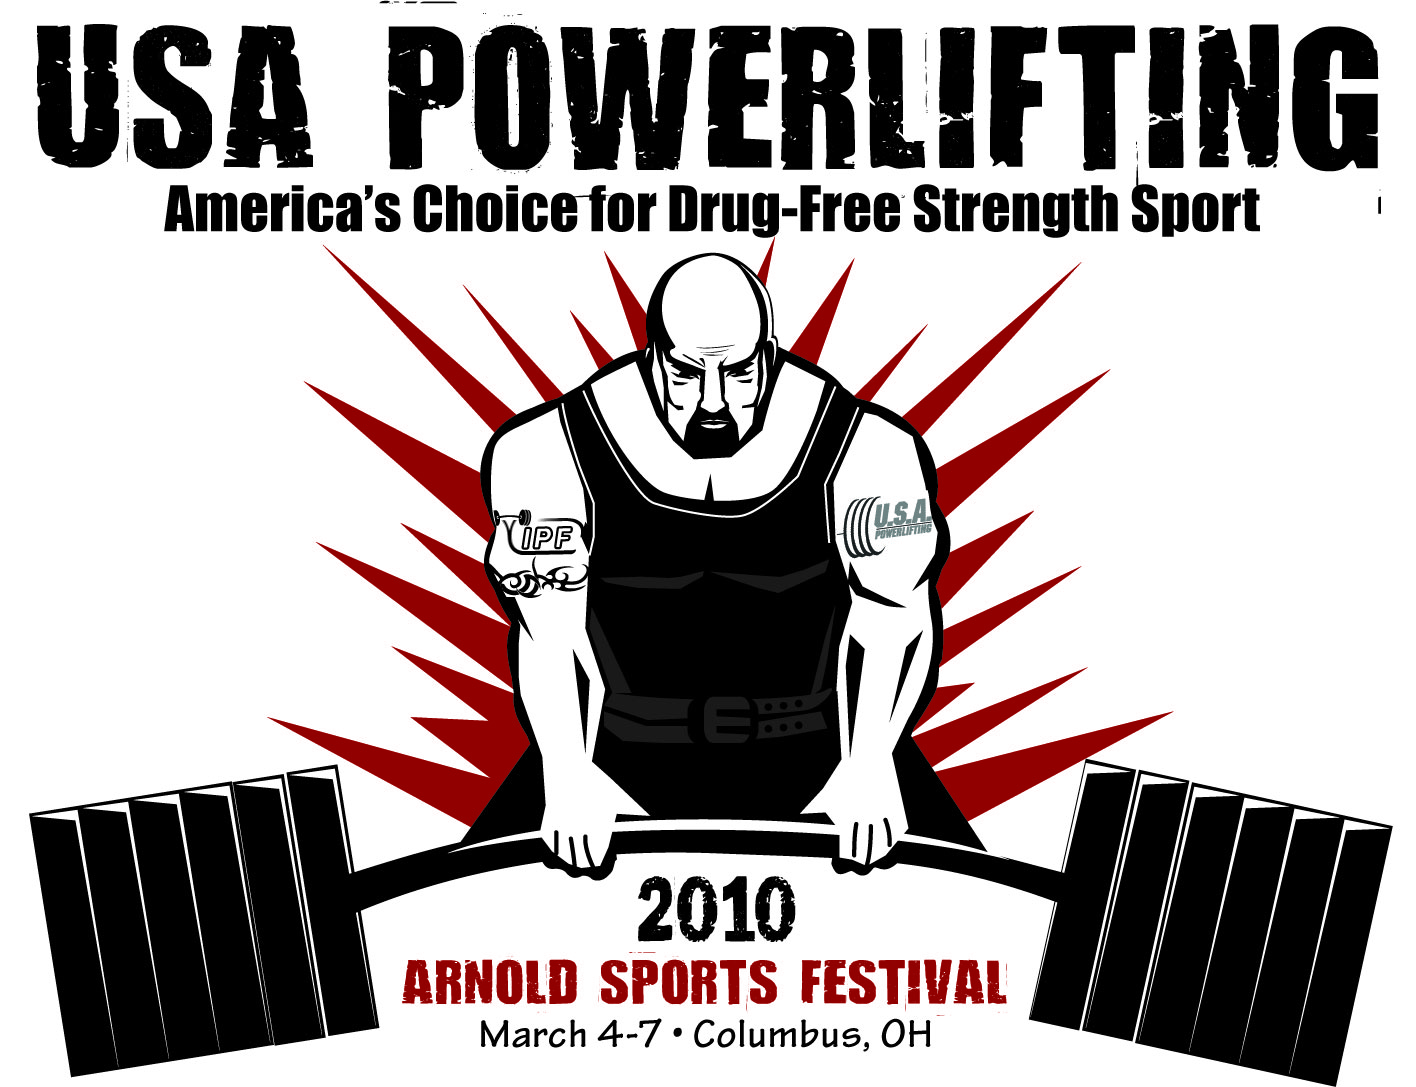 Arnold Sports Festival Logo Contest | USA POWERLIFTING